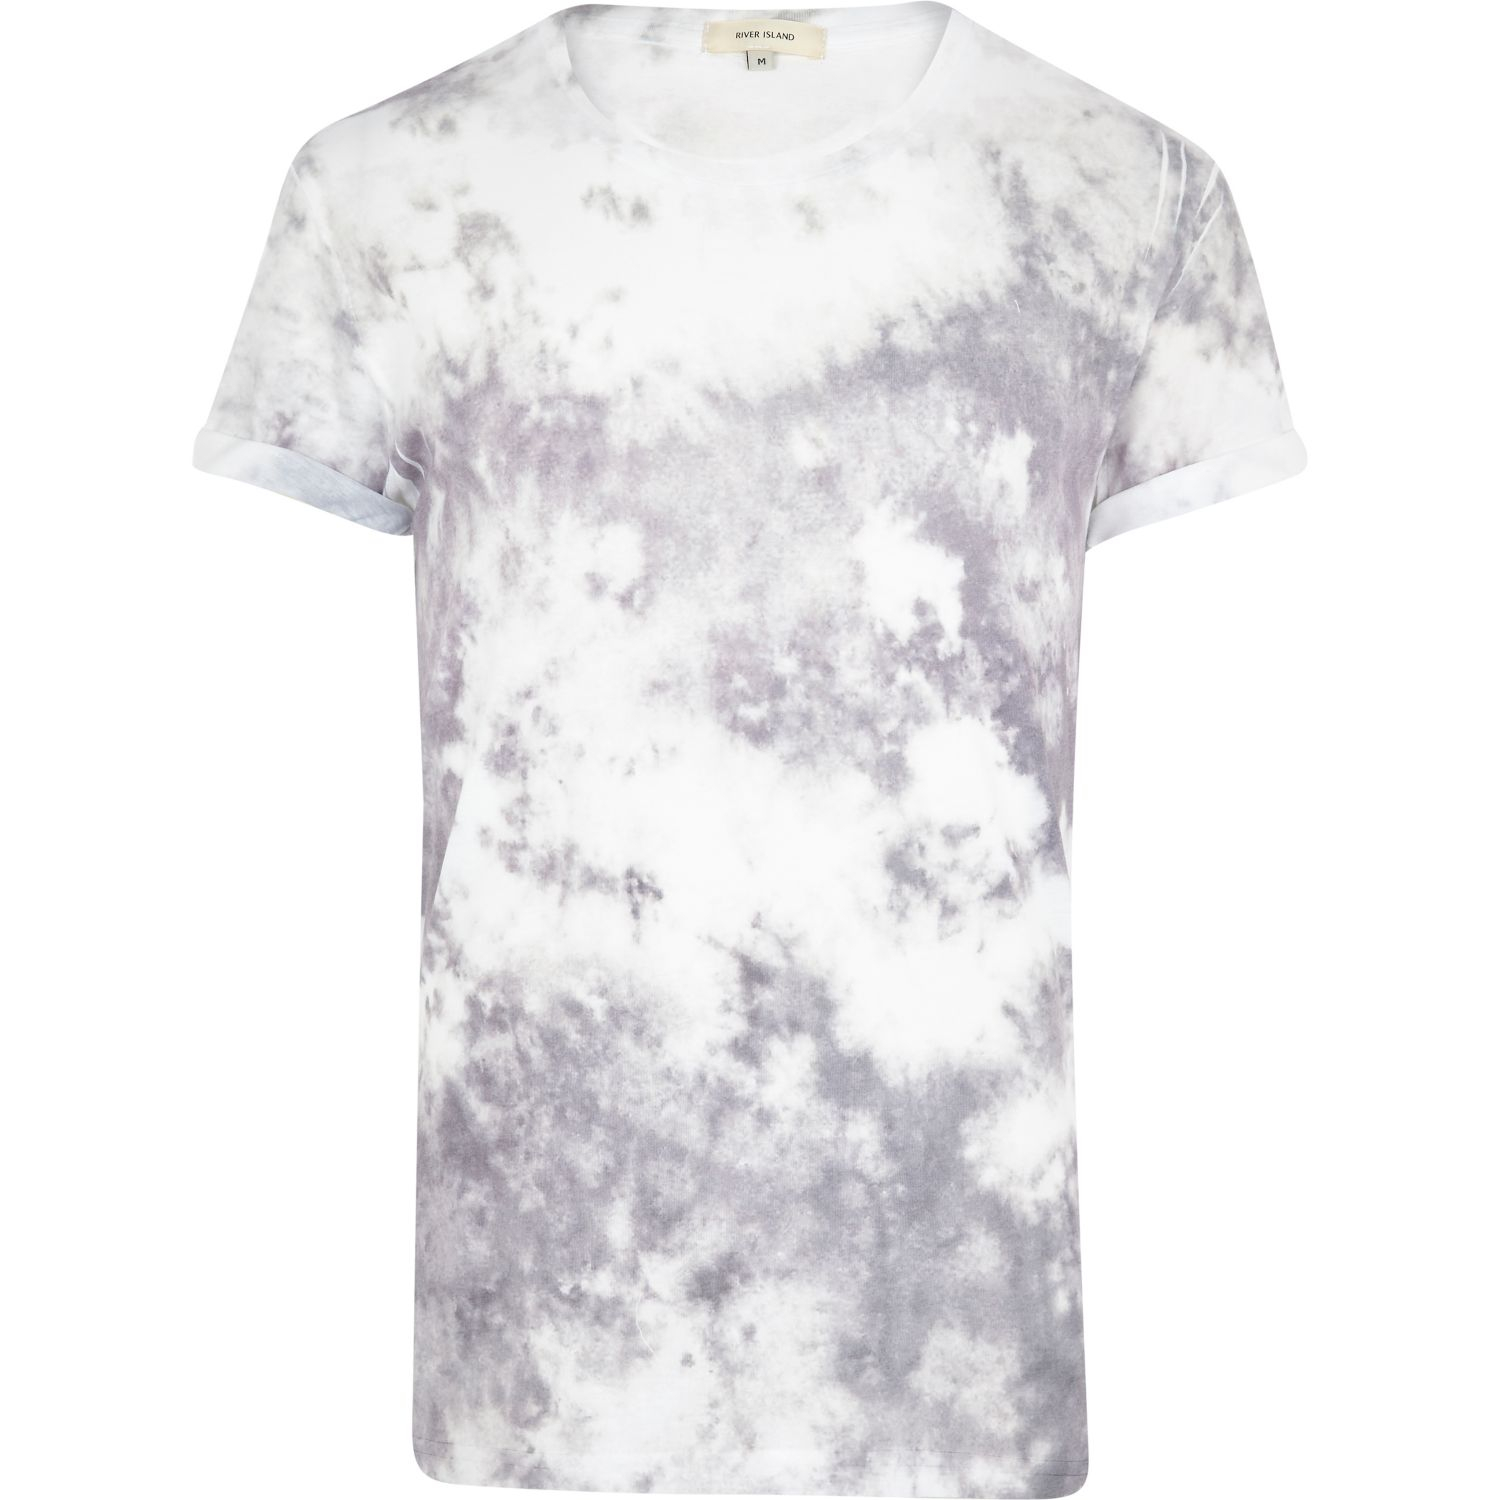 how to make grey dye for clothes